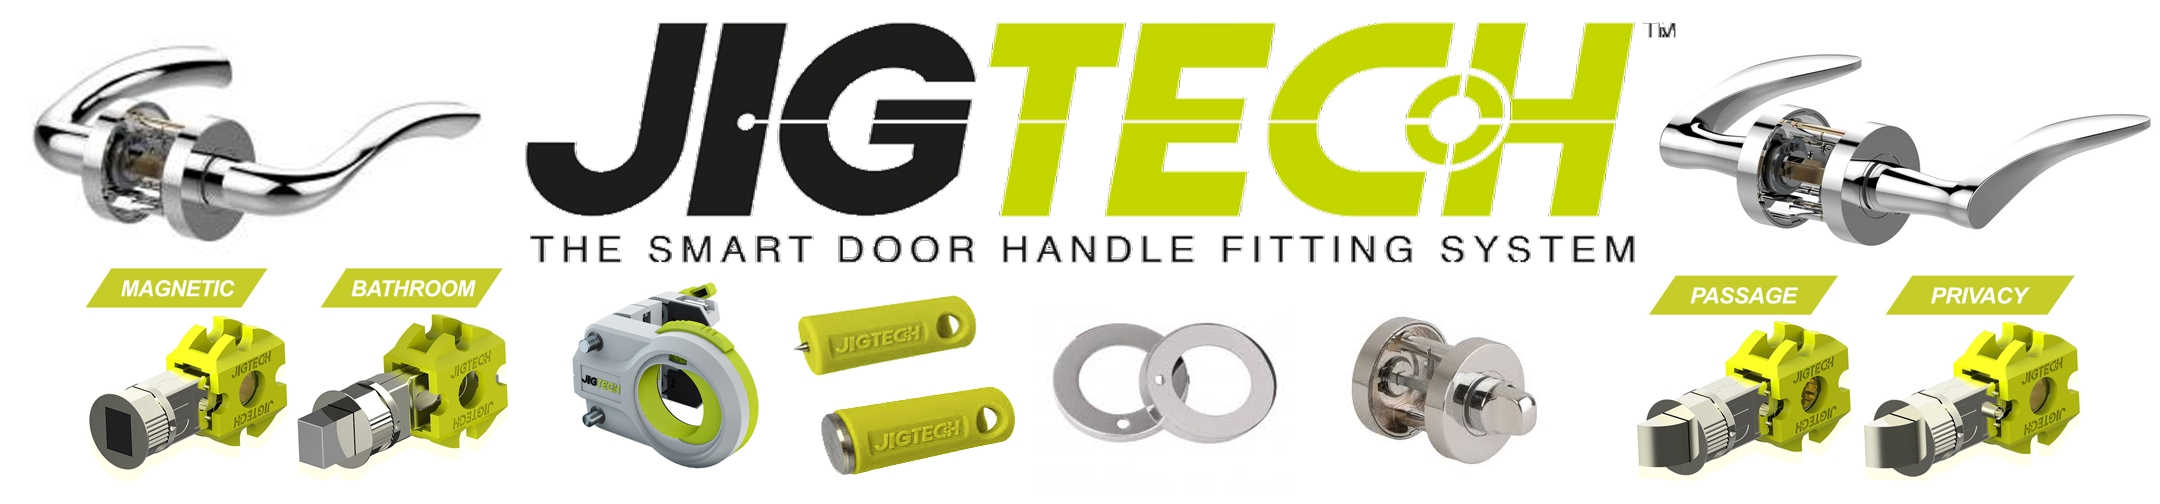 Jigtech Handle Range